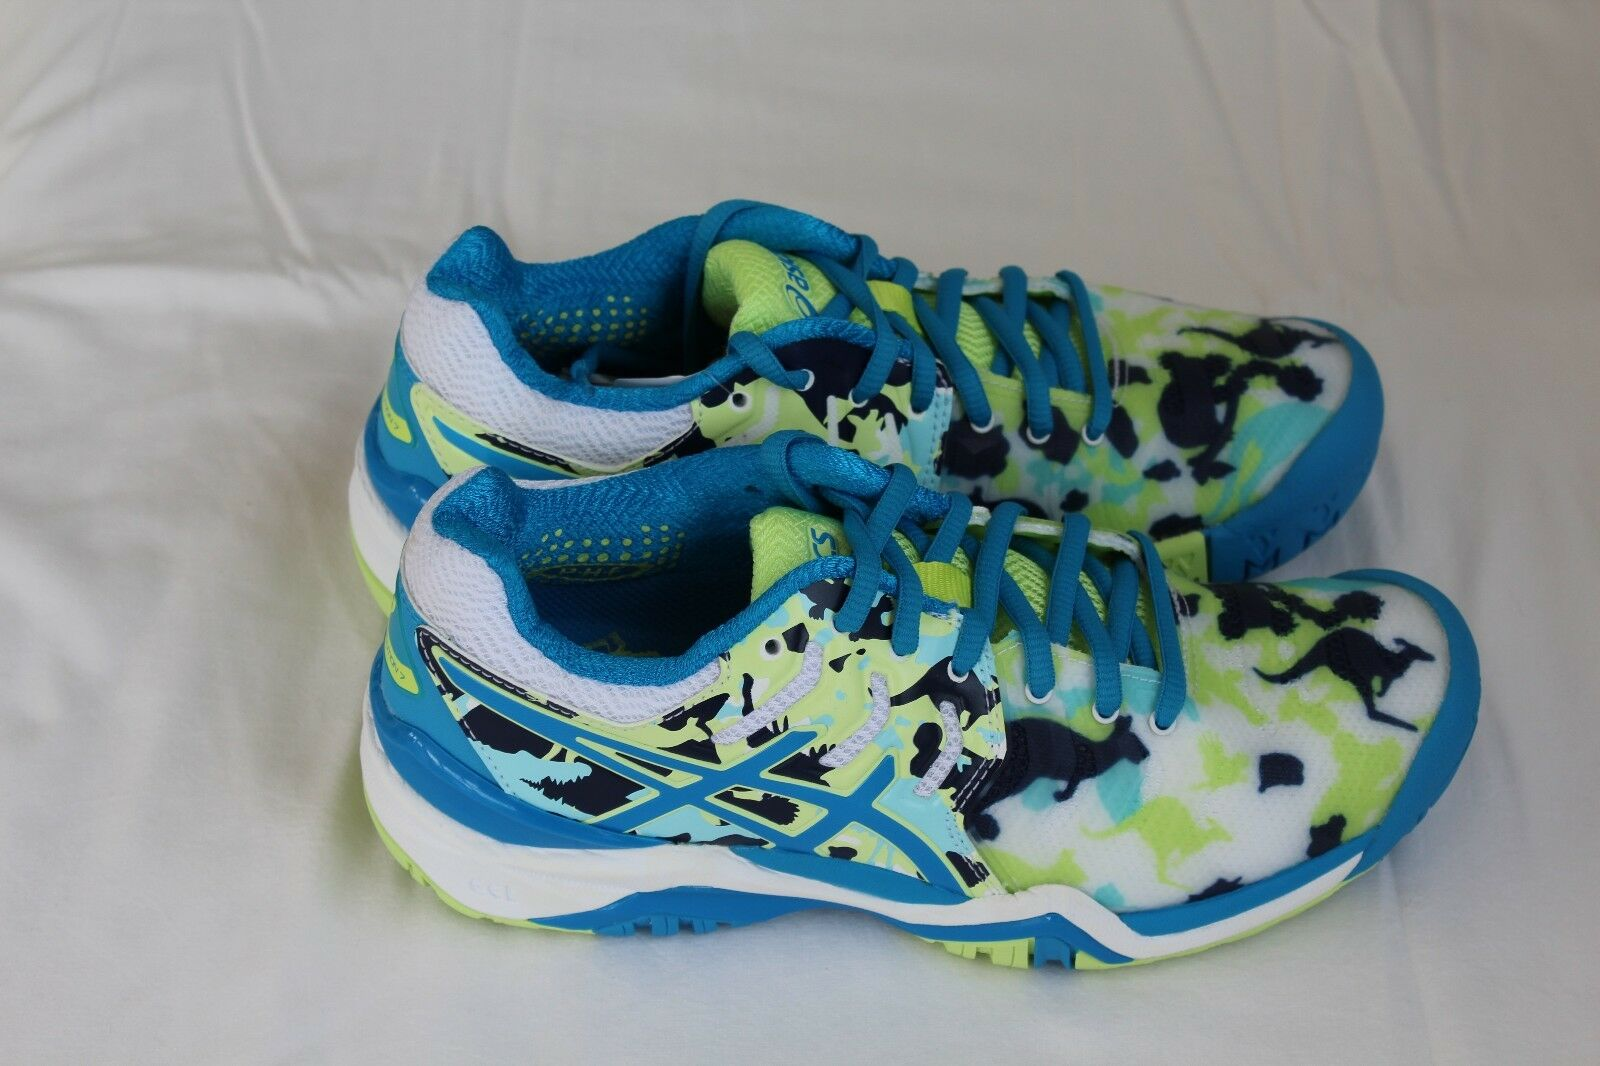 ASICS GEL-RESOLUTION 7 L.E. MELBOURNE TRAINERS UK 4-9